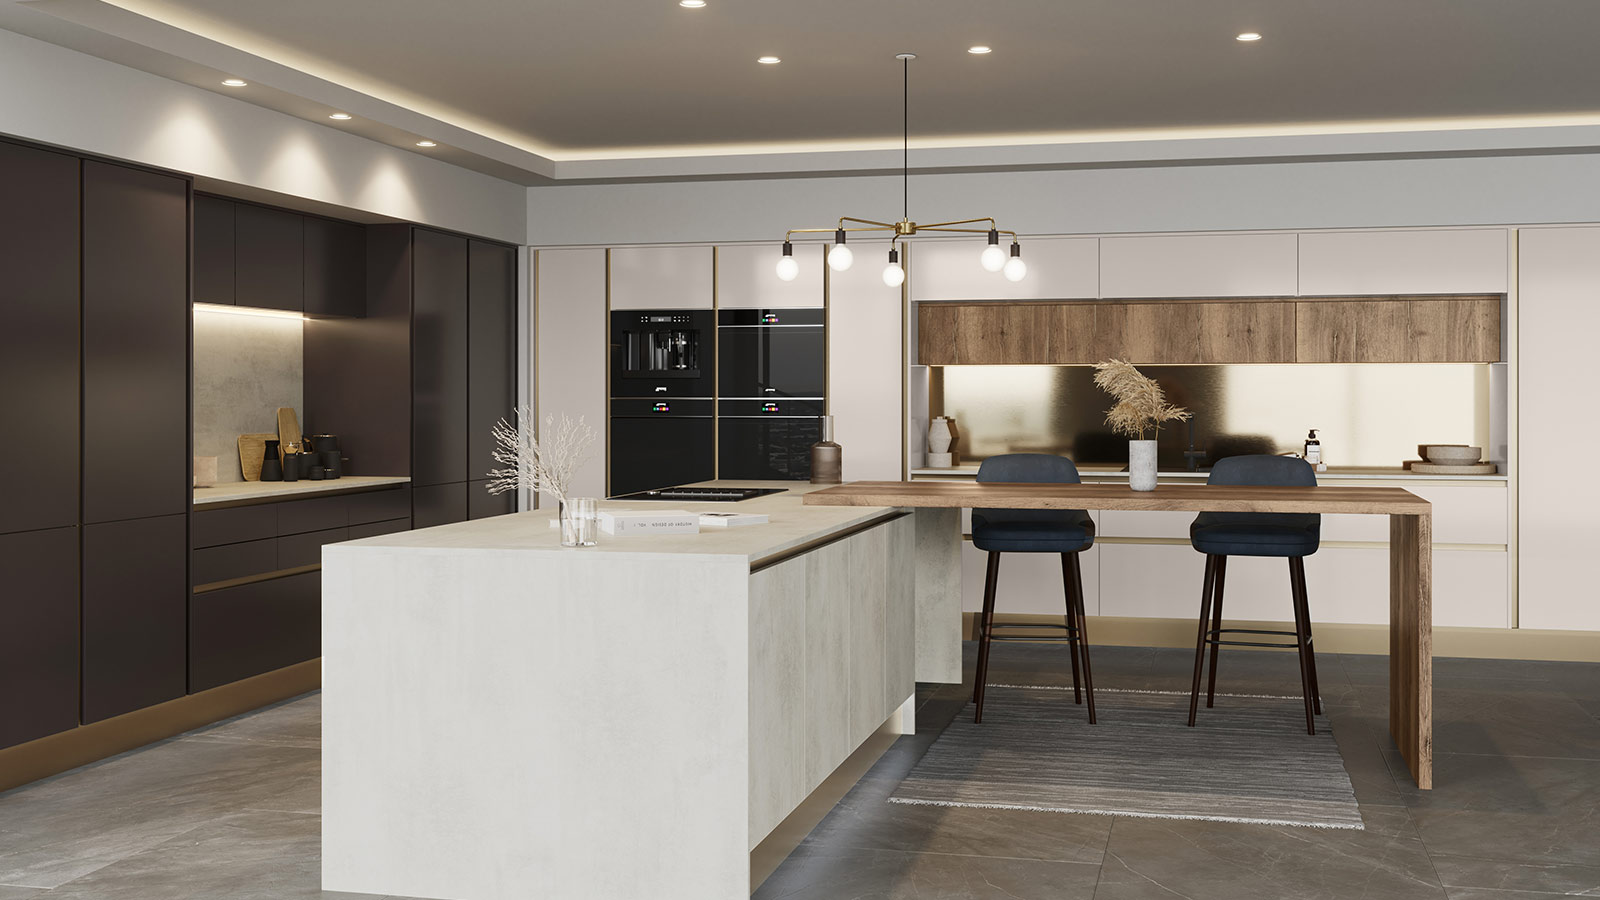 Modern kitchen with metallic accents and wood features